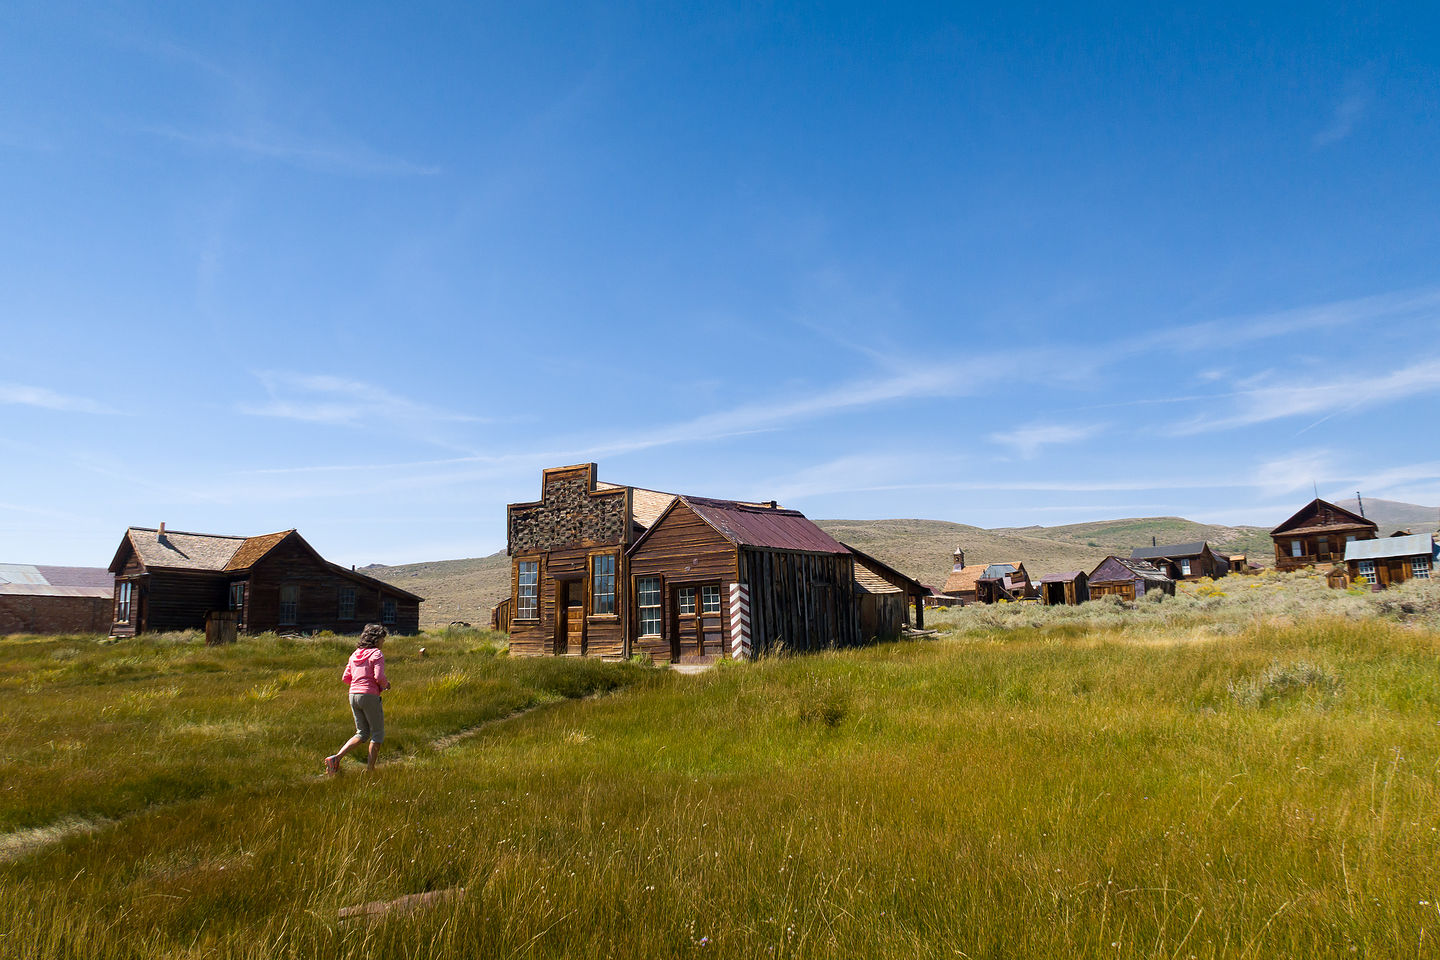 Lolo loose in Bodie